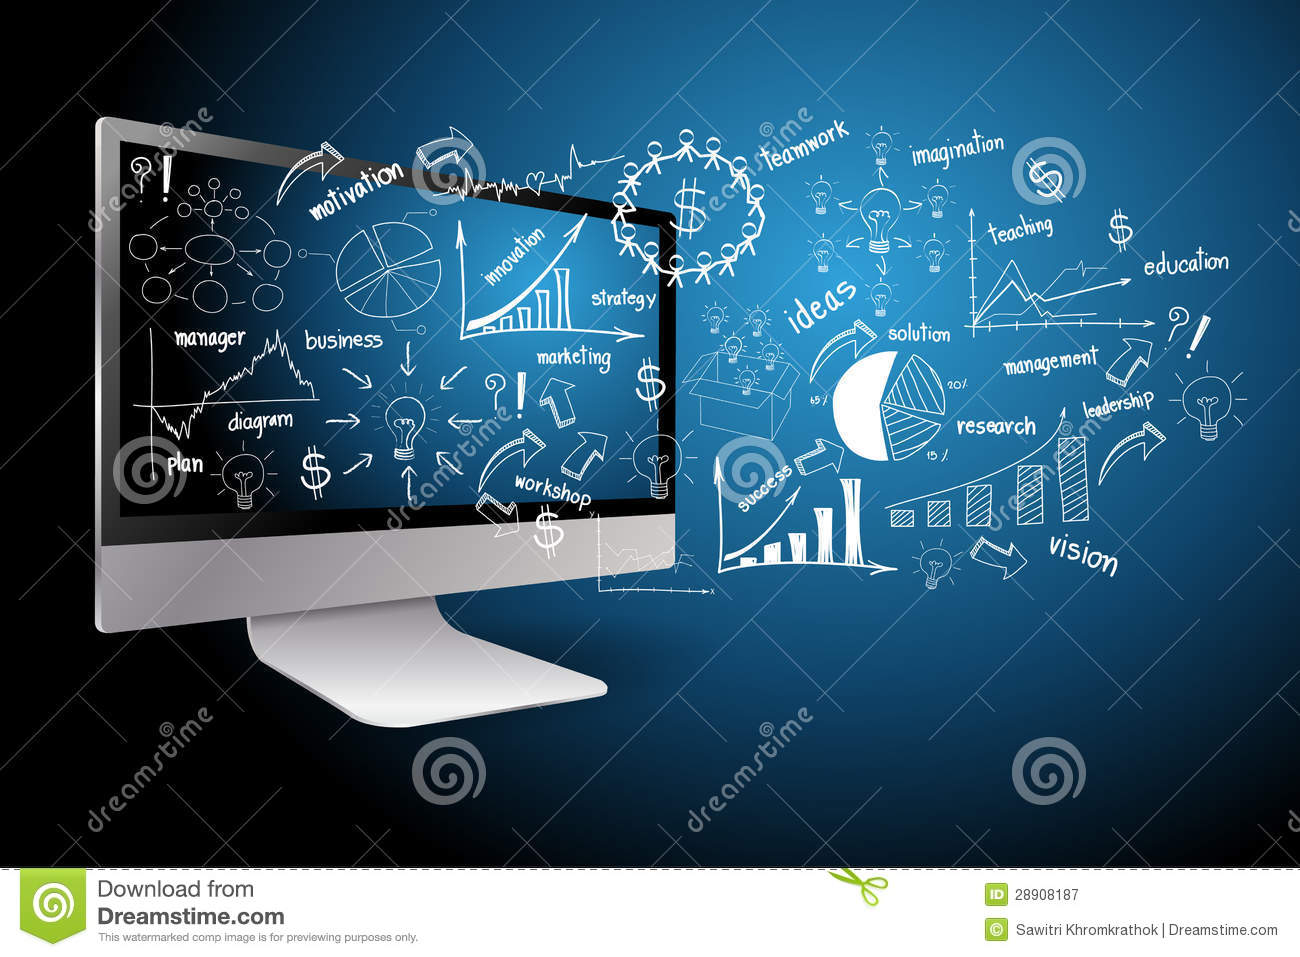 desktop computer diagram sub wiring with business plan concept royalty free stock photography - image: 28908187